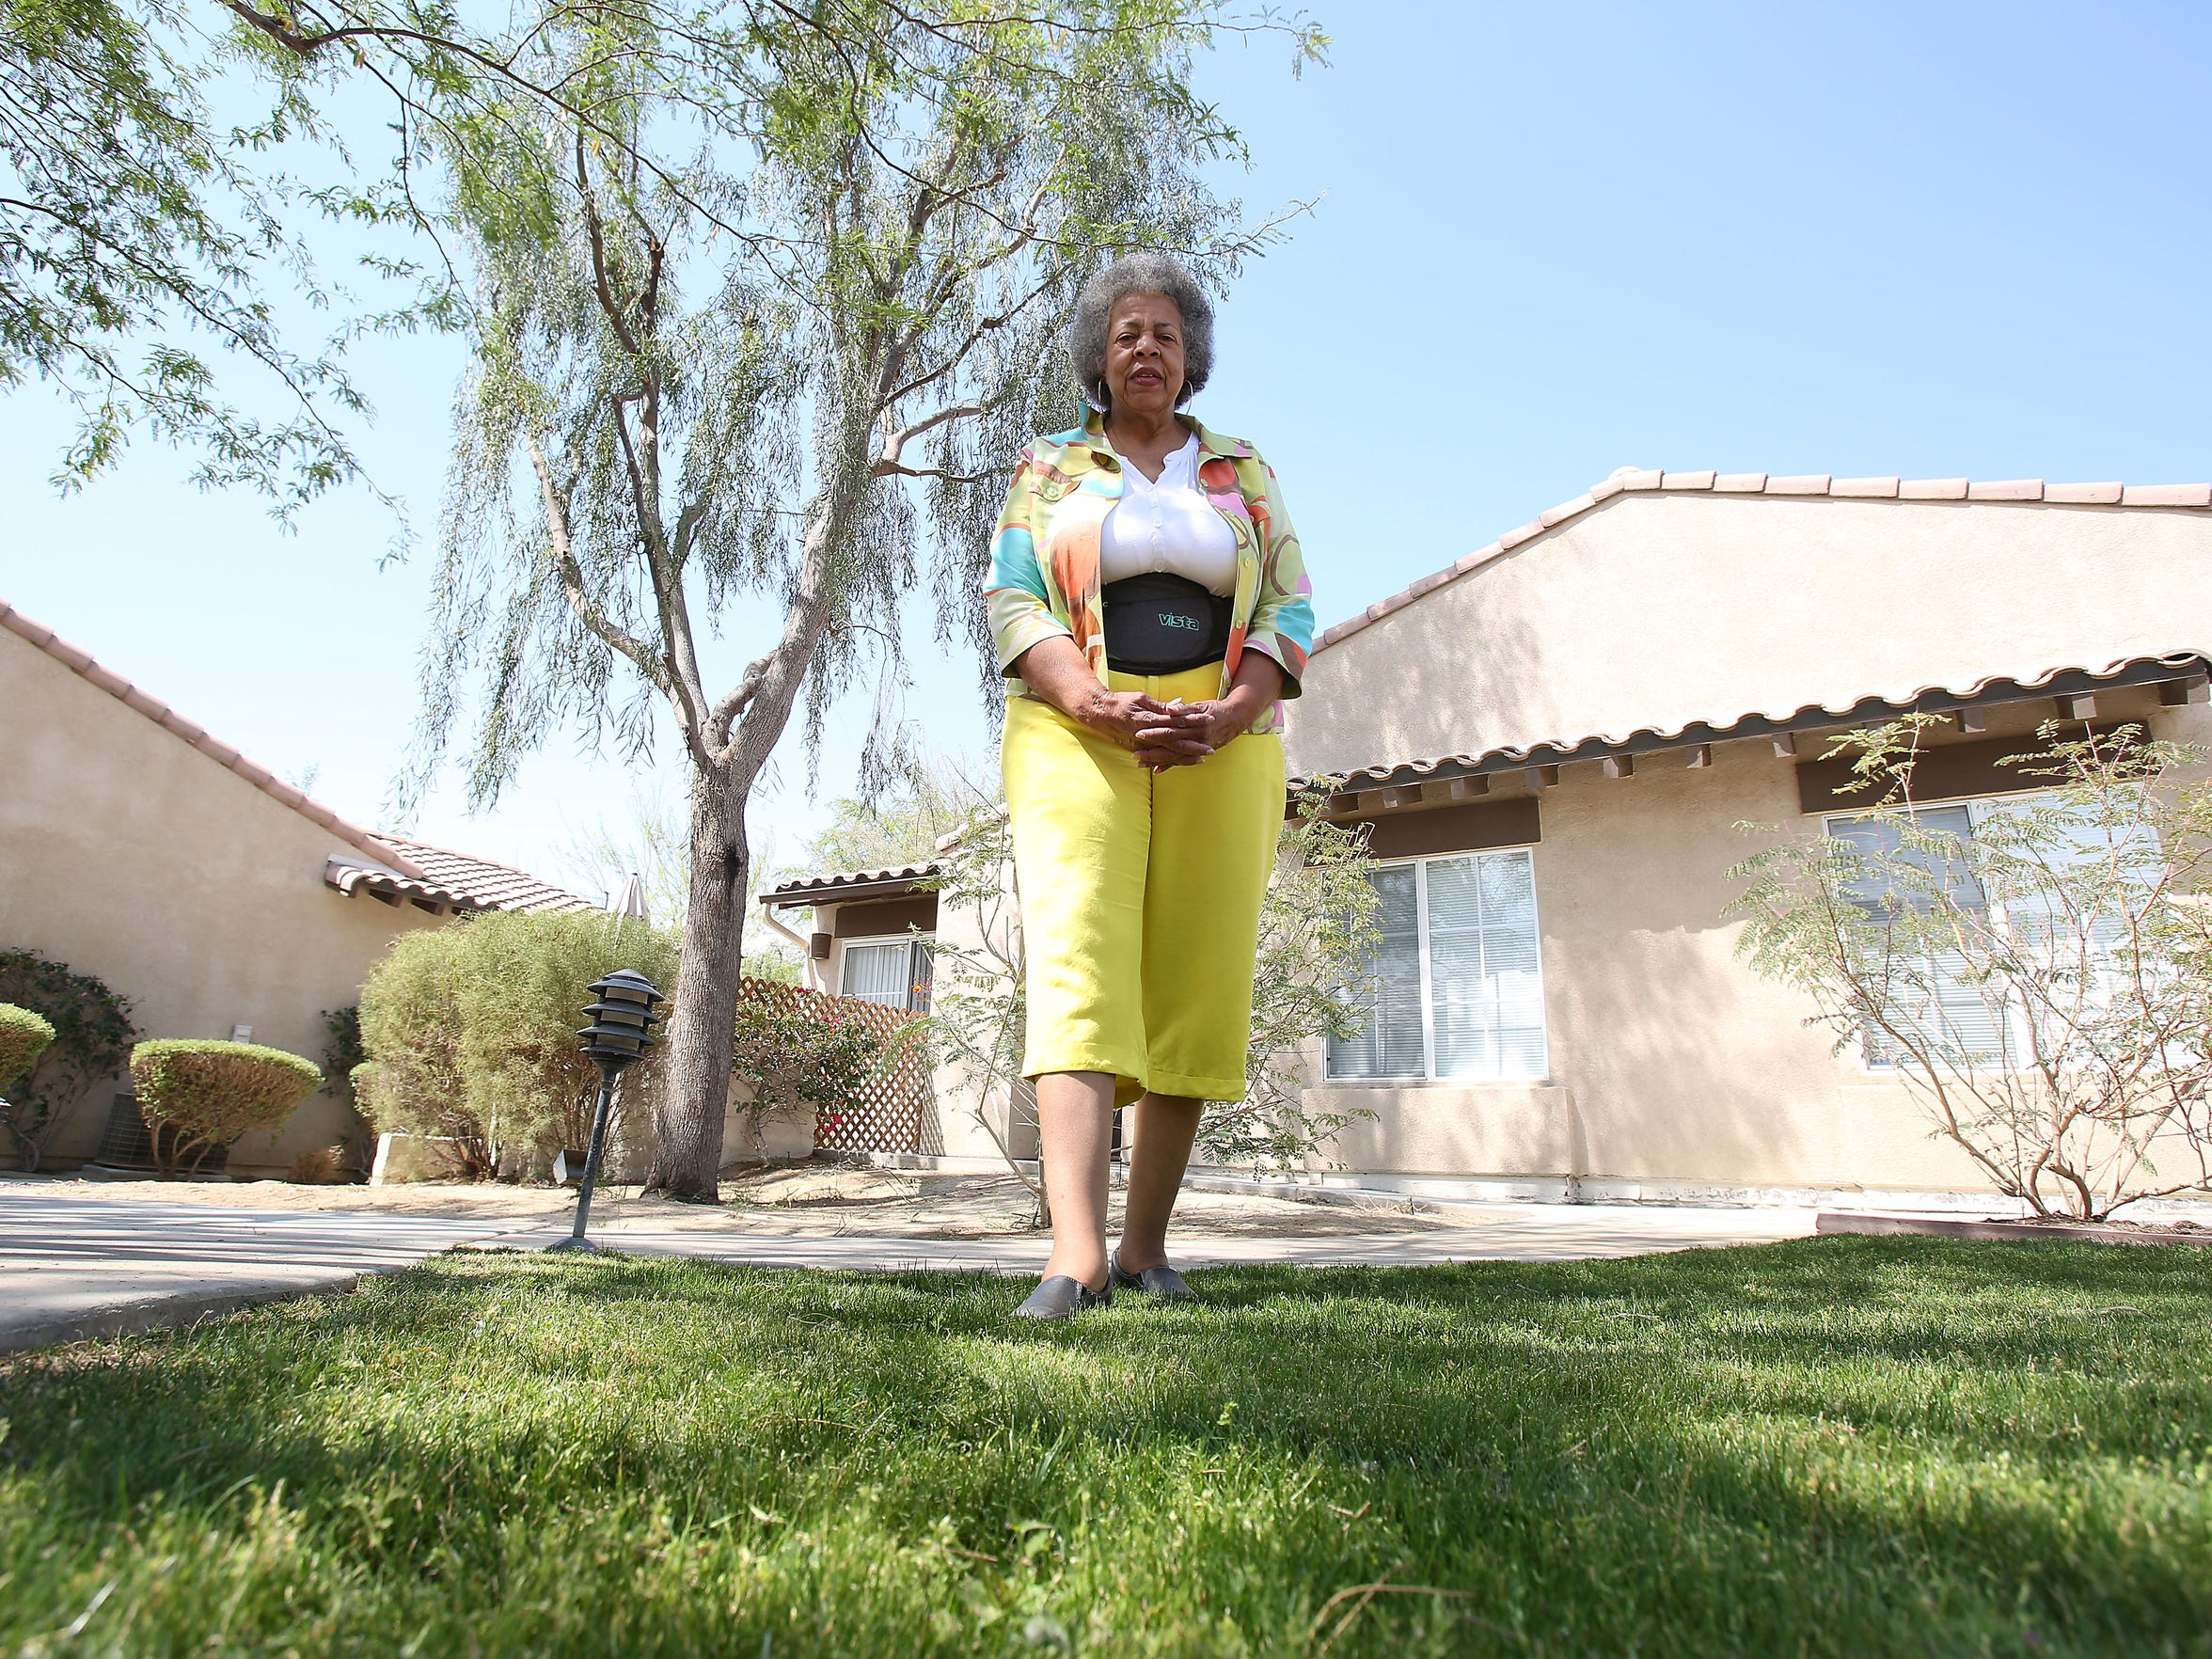 Lynne Joy Rogers believes her community could do more